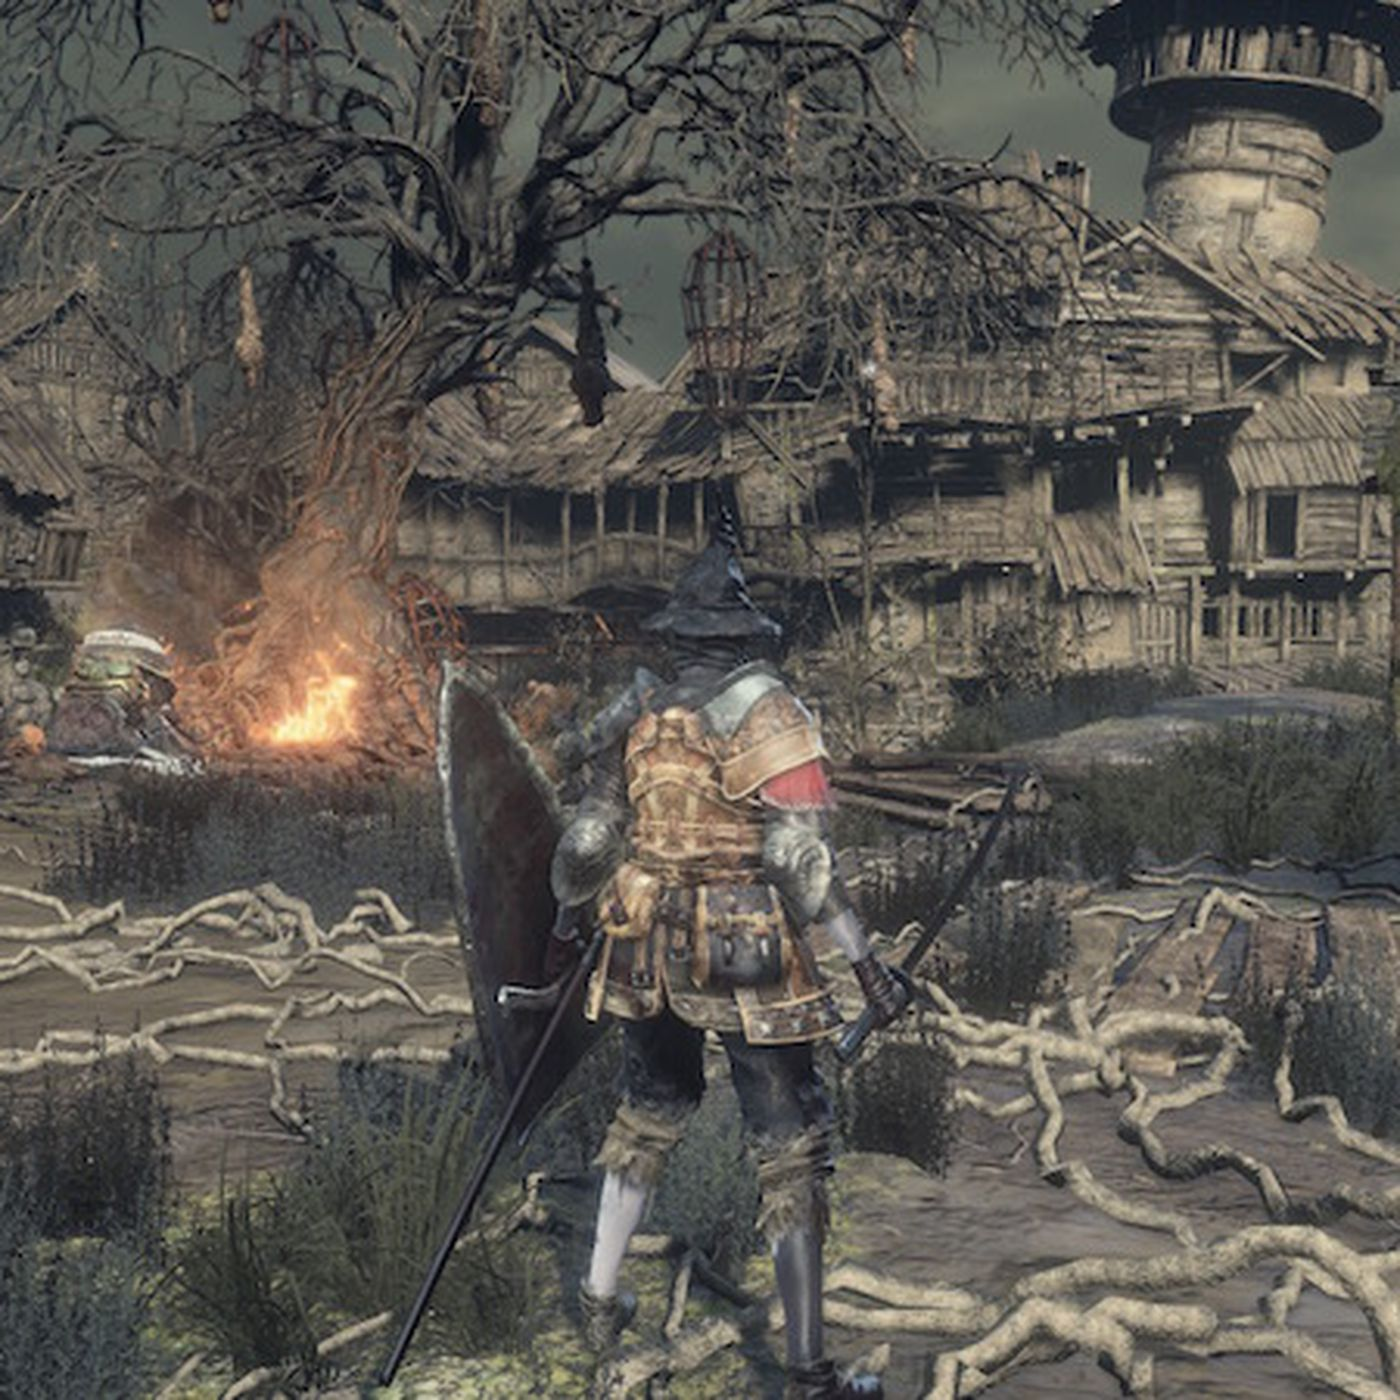 Dark Souls 3 Undead Settlement Walkthrough Polygon He is located just below the foot of the high wall bonfire). dark souls 3 undead settlement